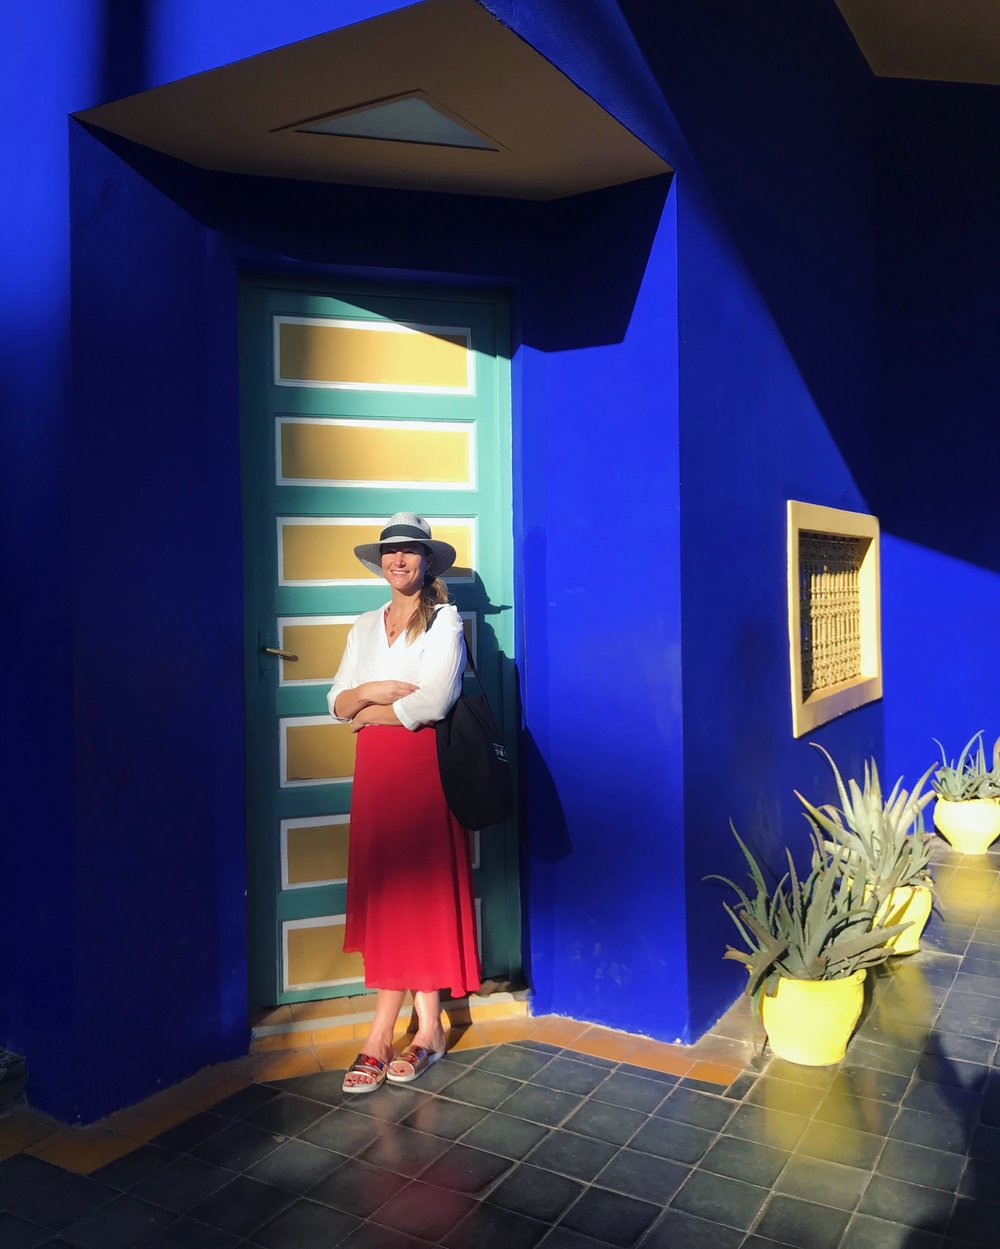 Colour popping: Life is just better in 'Majorelle blue'